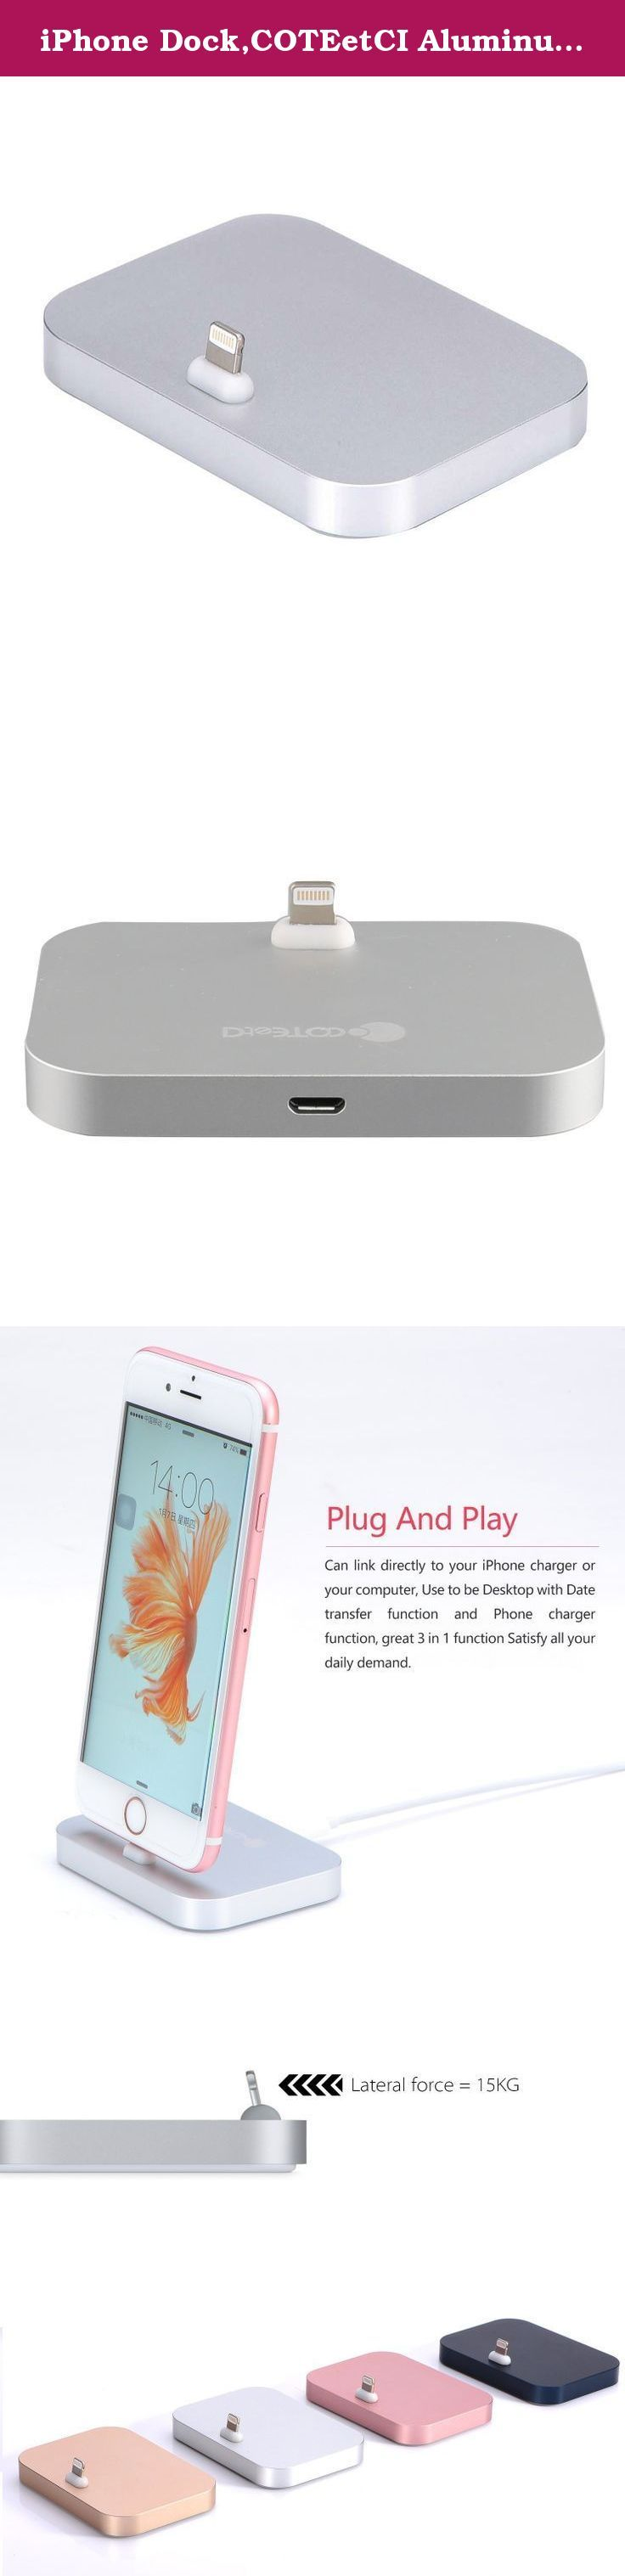 iPhone Dock,COTEetCI Aluminum Lightning Charging Dock for Apple iPhone 6 6S Plus 5 5S (silver). COTEetCI charging dock You can use it to charge and sync any iPhone that has a Lightning connector. Your iPhone sits upright in the dock as it syncs or charges, so it is ideal for a desk or counter top. Even when your iPhone is in an Apple-designed case, it is easy to dock. And you can unlock iPhone or use Touch ID without having to remove it from the dock. Here are some ways you can use the...